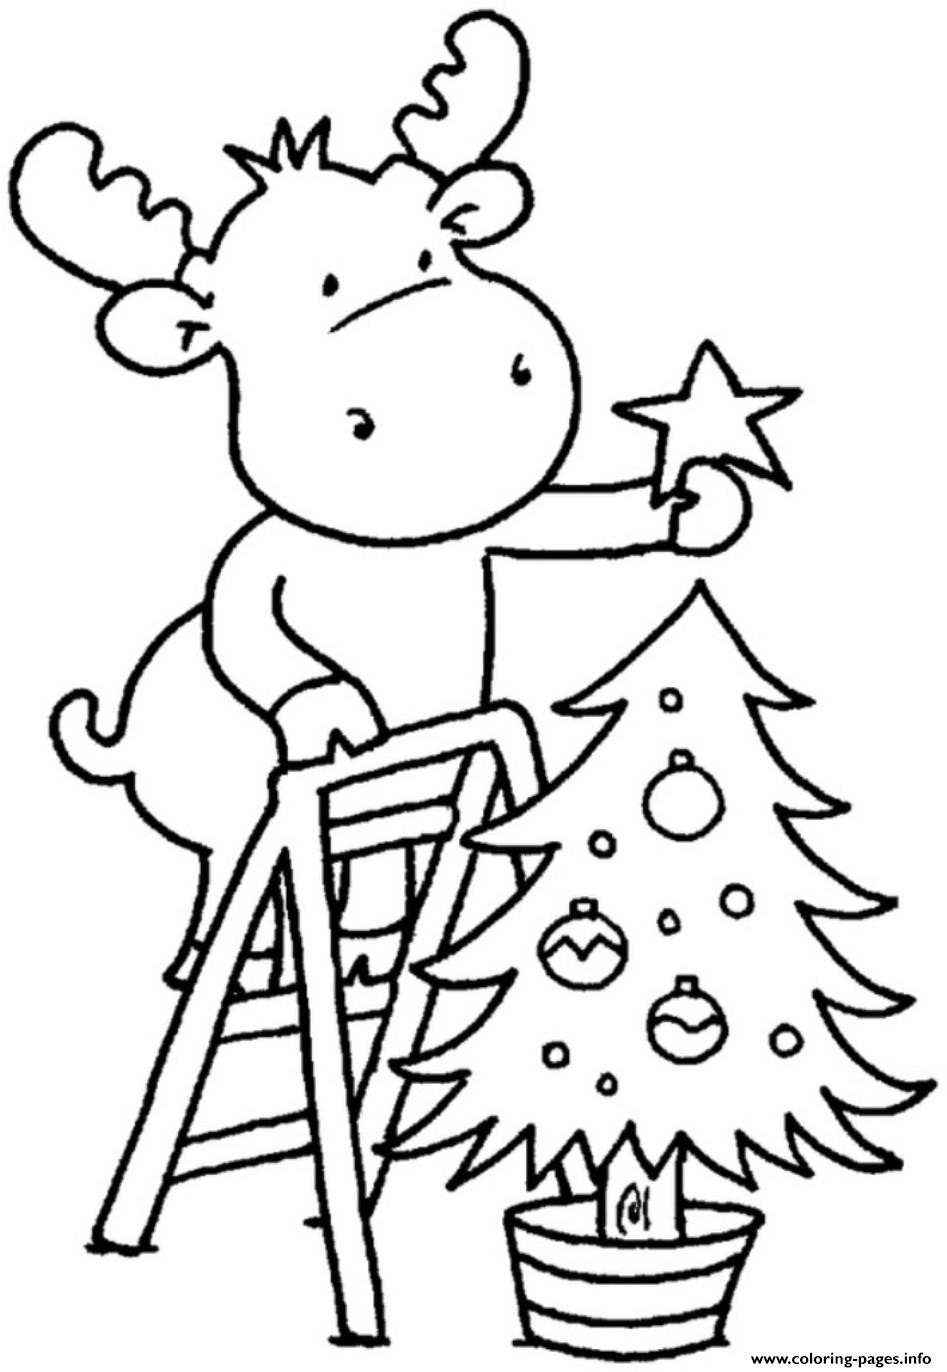 Holiday Coloring Pages For Kids  Christmas Tree For Children Coloring Pages Printable